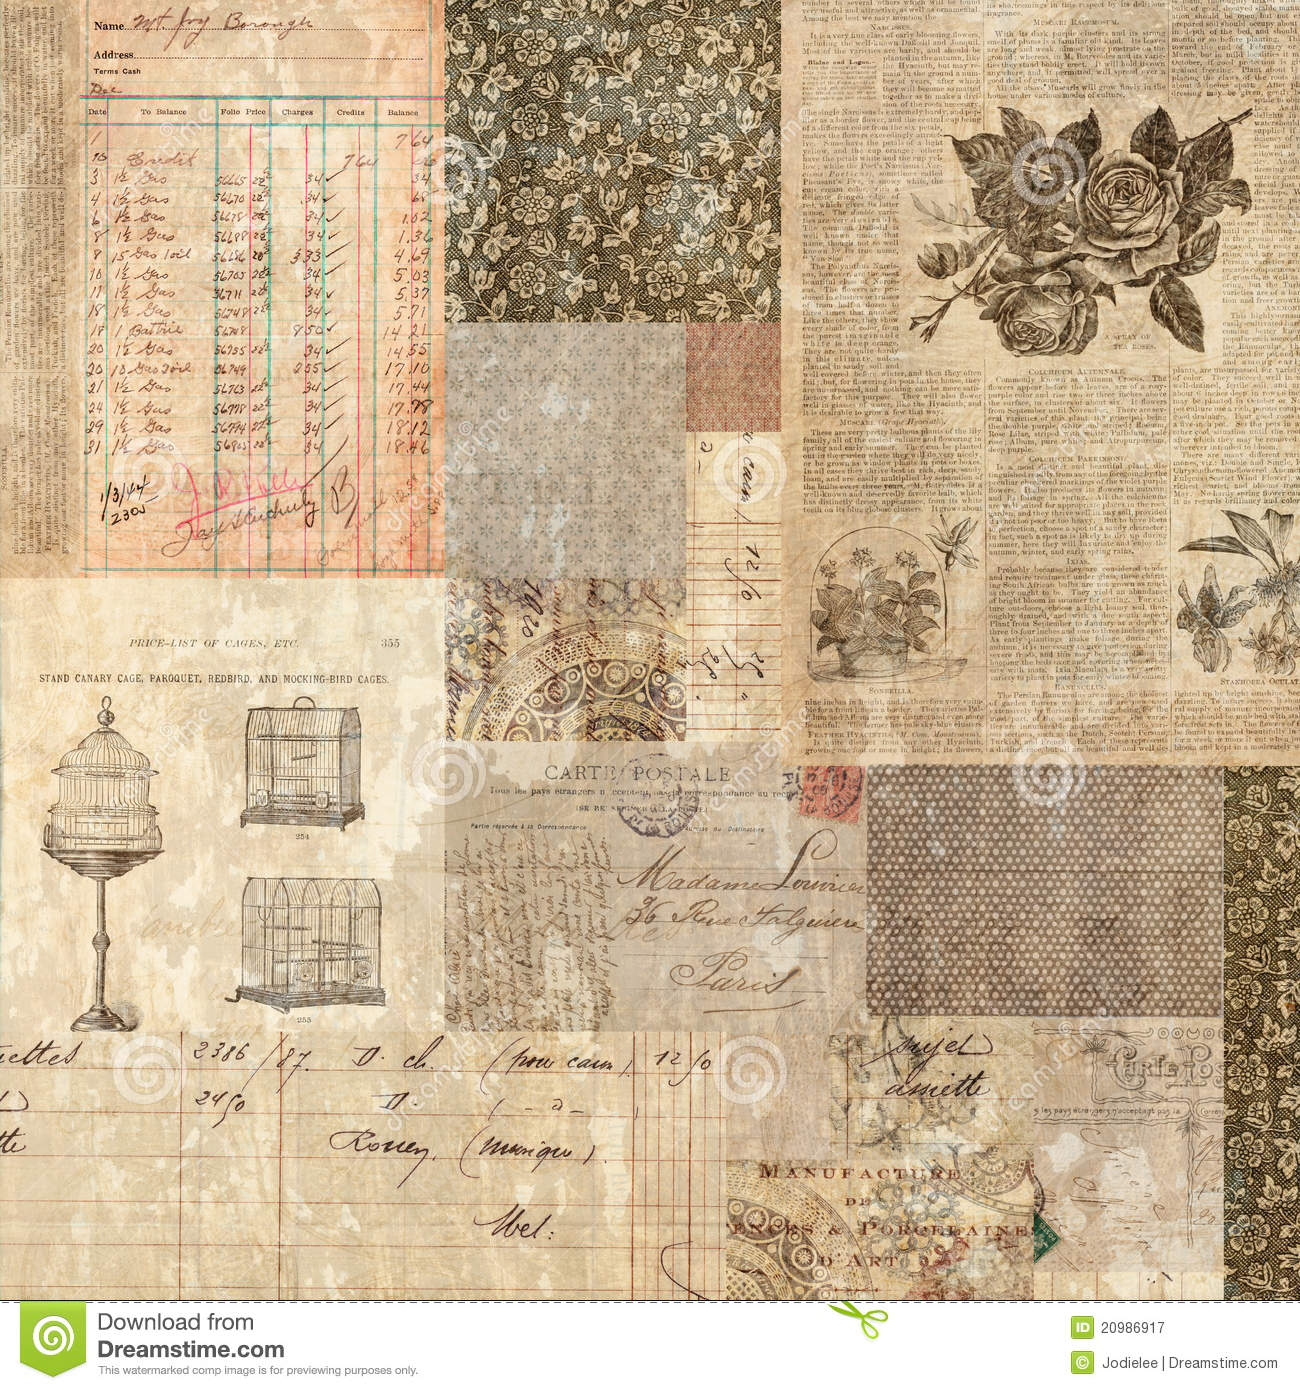 Download Grungy Vintage Postcard Ephemera Collage Backgroun Stock Image - Image of grunge, collage: 20986917